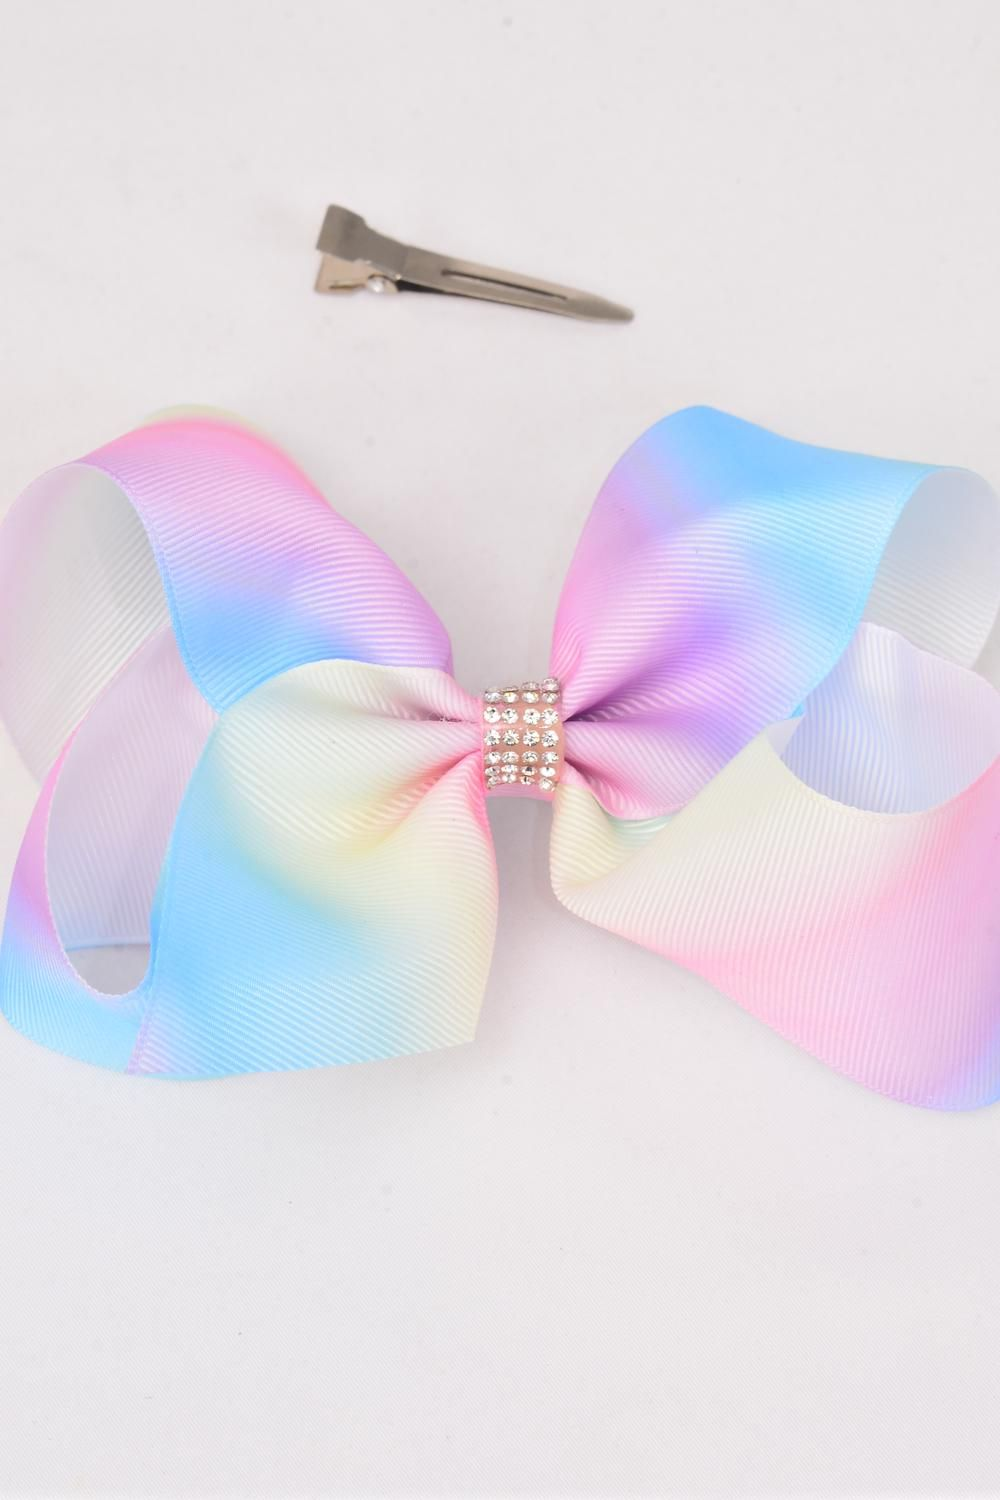 "Hair Bow Jumbo Tiedye Center Clear Stones Grosgrain Bow-tie Pastel/DZ **Pastel** Alligator Clip,Size-6""x 5"" Wide,Clip Strip & UPC Code"